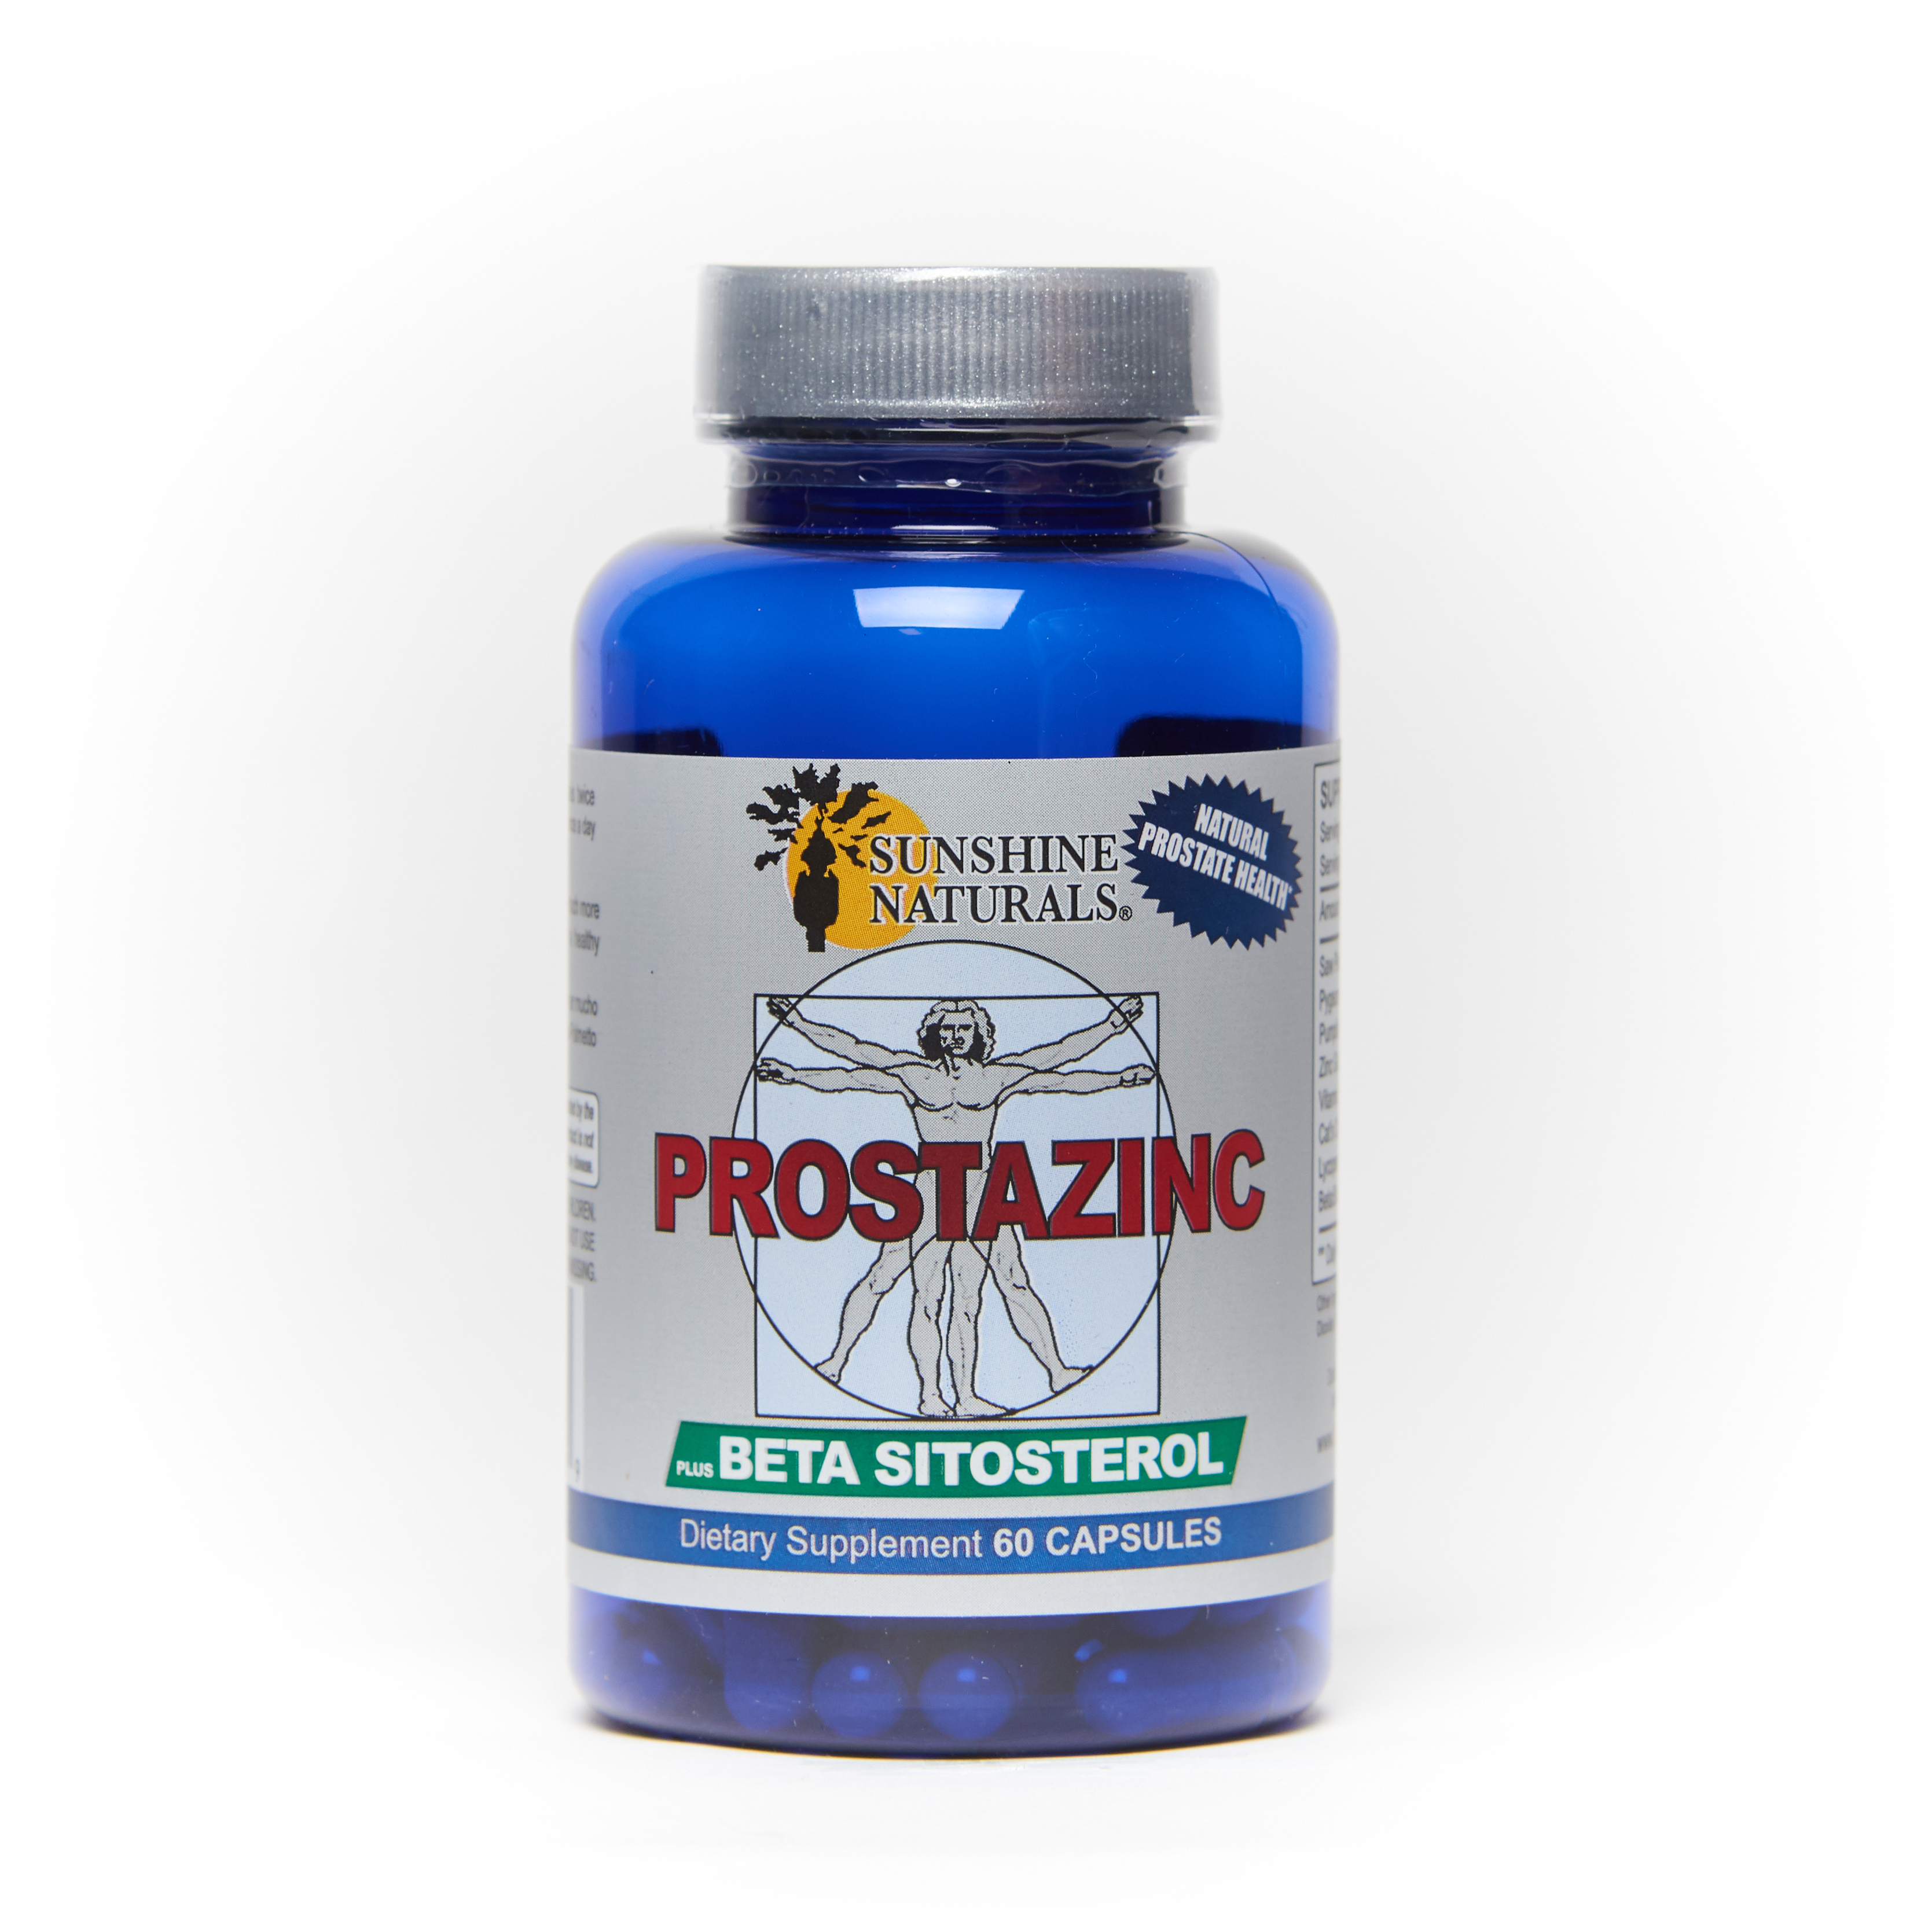 Prostazinc with Betasitosterol 60 Capsules